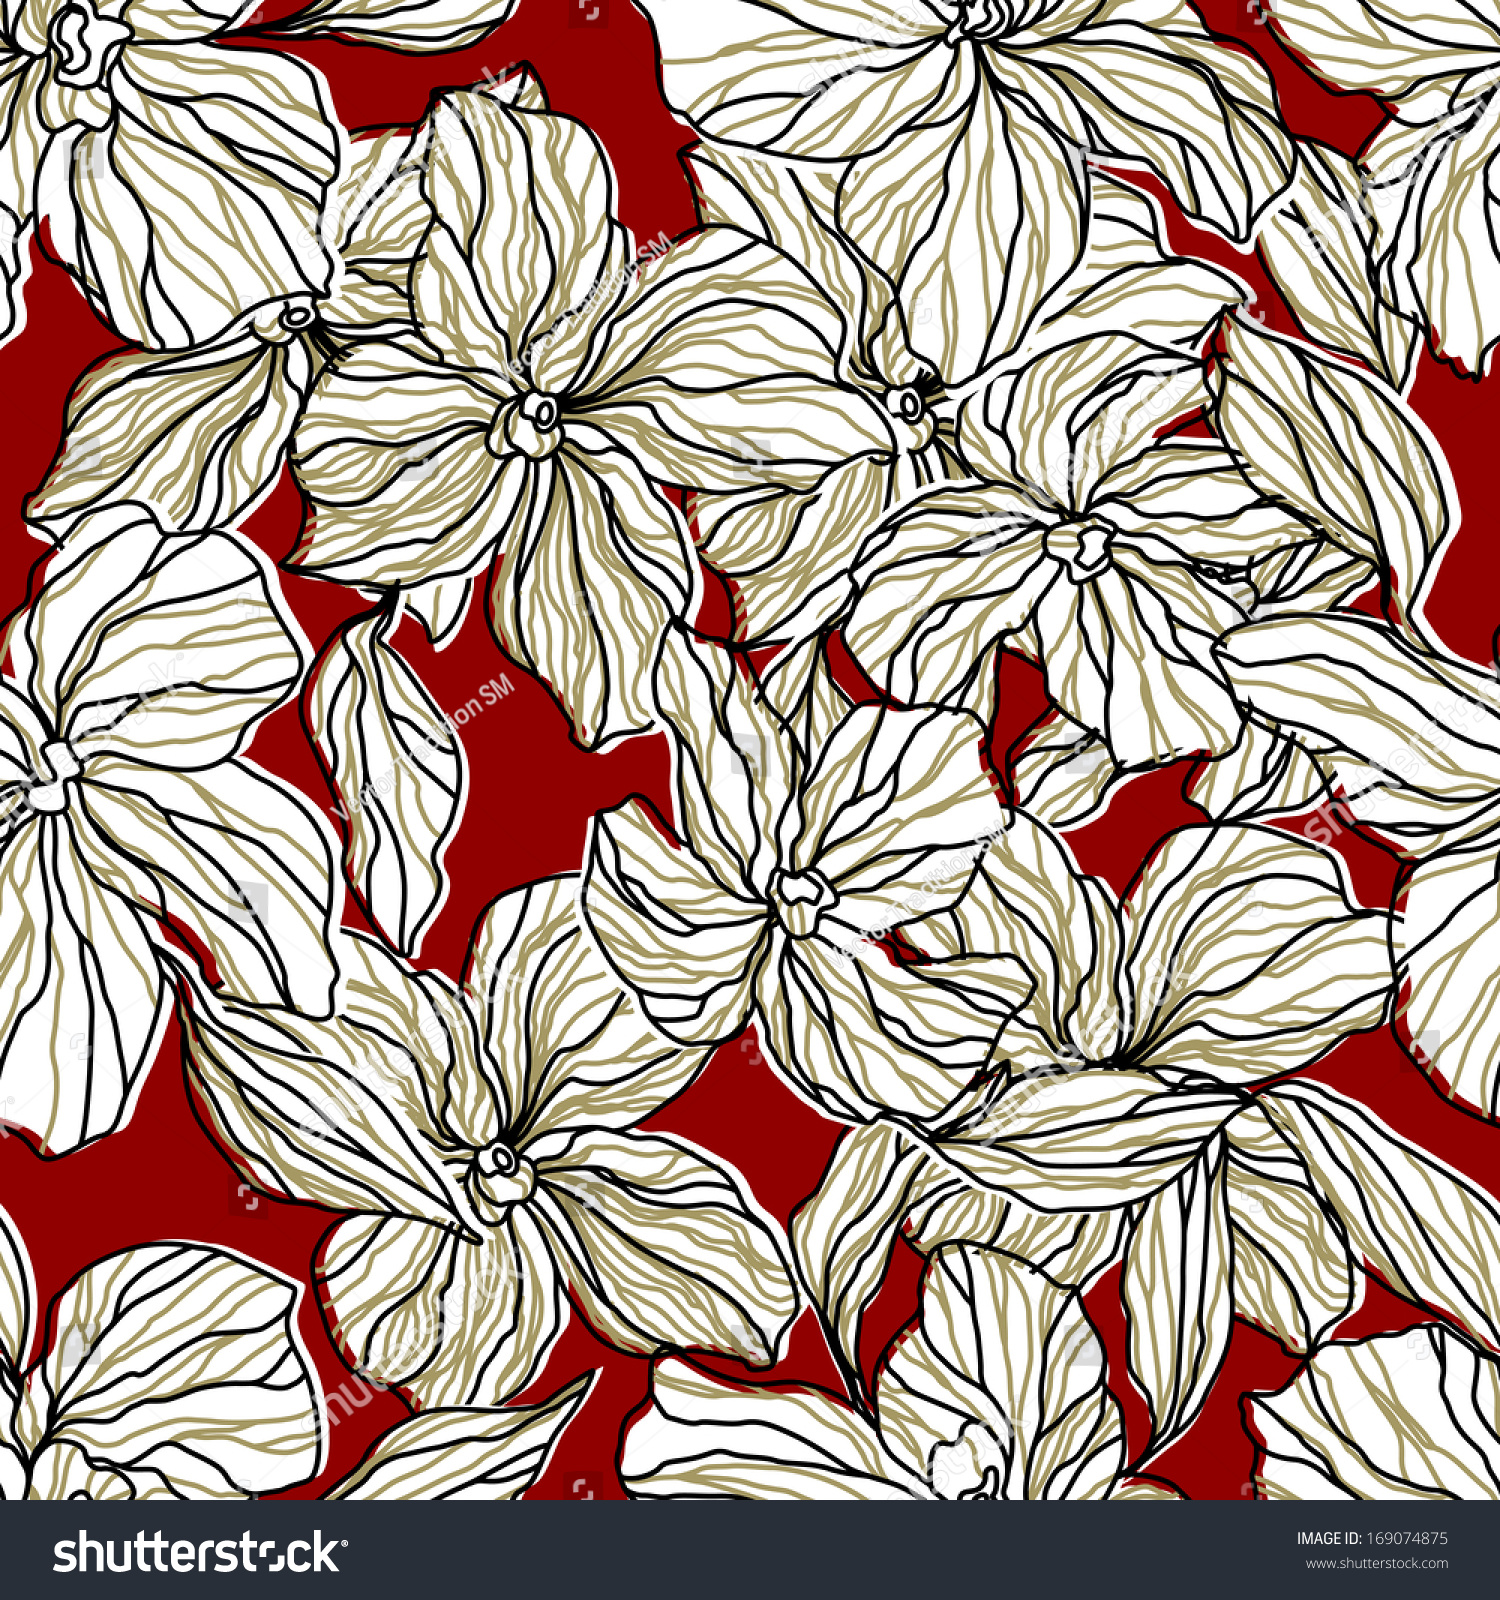 Abstract Floral Seamless Pattern White Flowers Stock Illustration